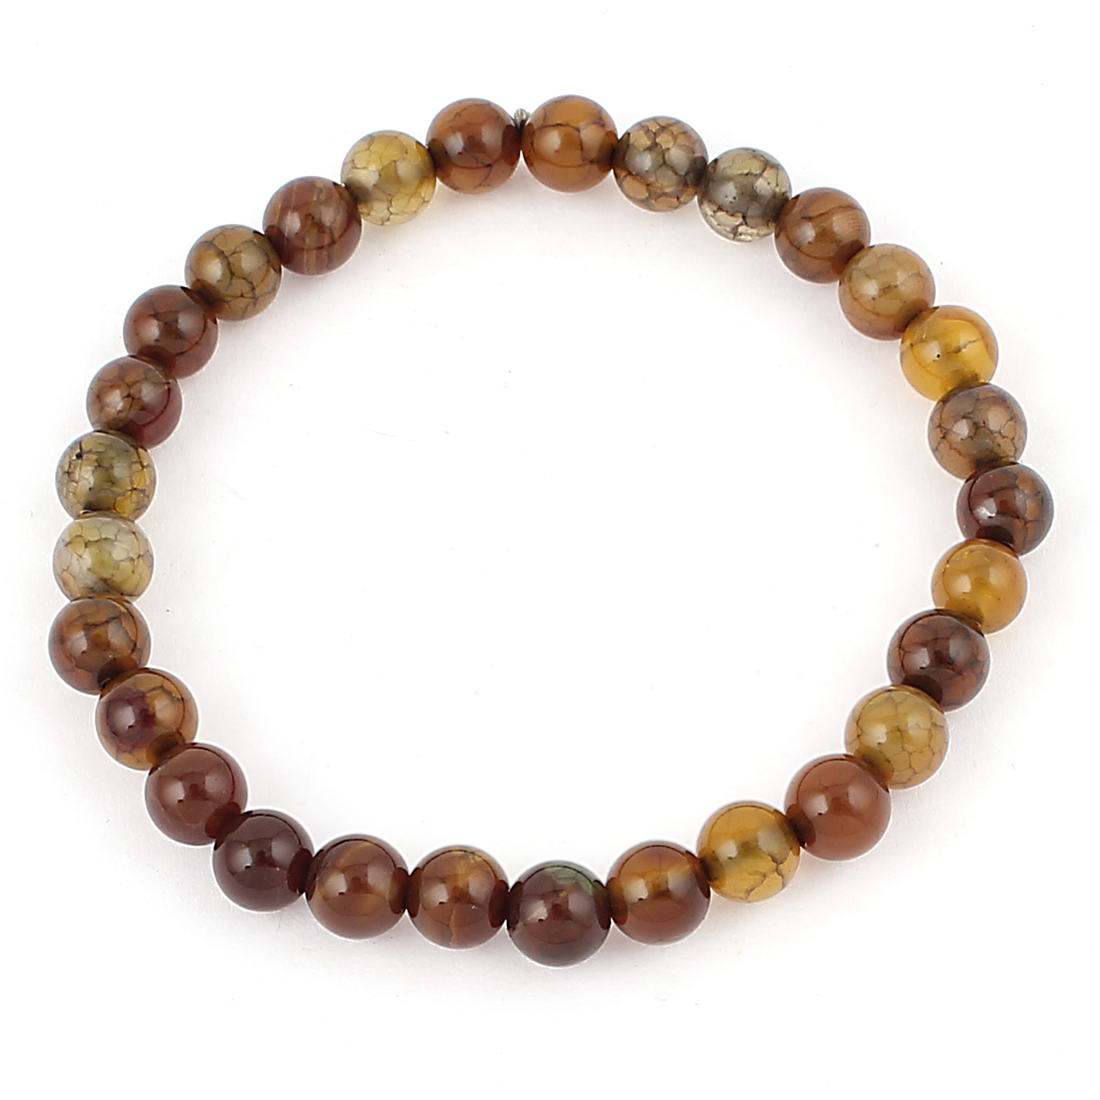 Woman Jewelry Faux Jade Beads Decor Elastic Wrist Bangle Bracelet Brown Yellow